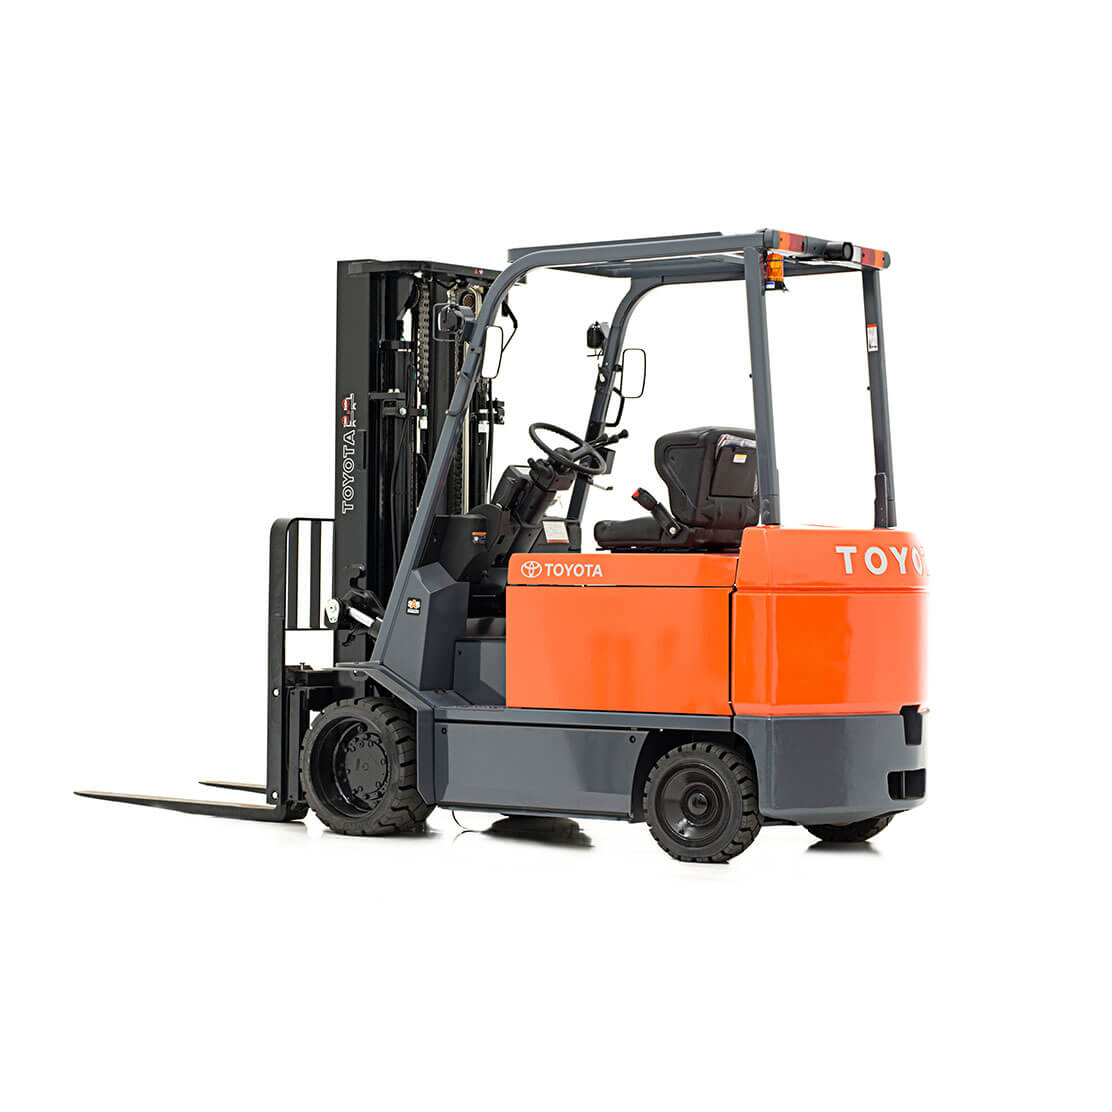 Large Electric Forklift side view